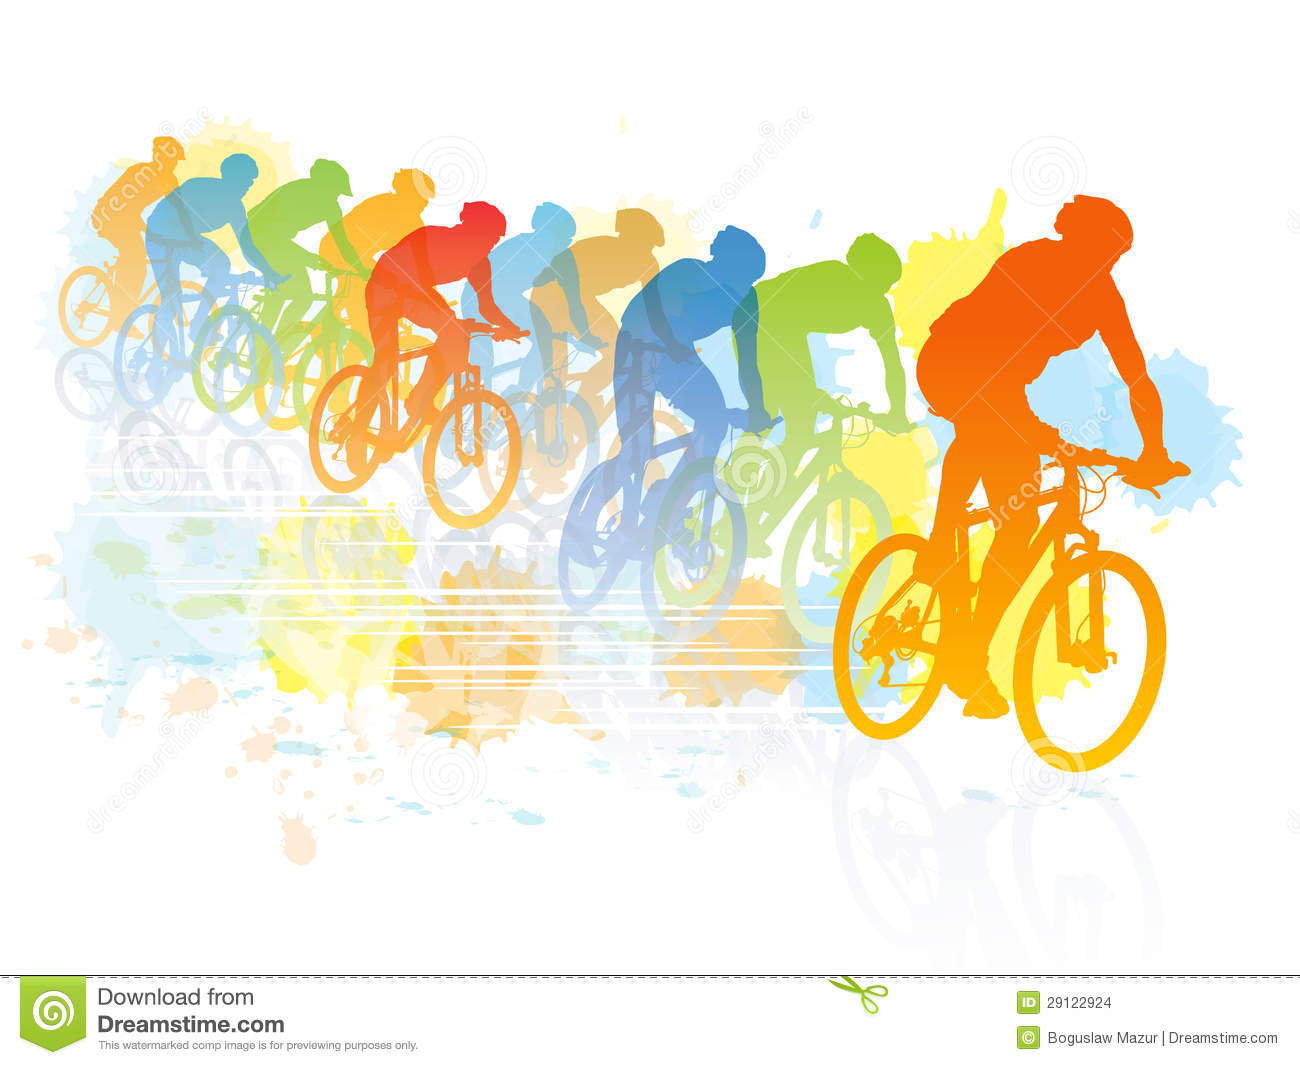 Cycle race clipart vector transparent stock Cycle race clipart - ClipartFest vector transparent stock